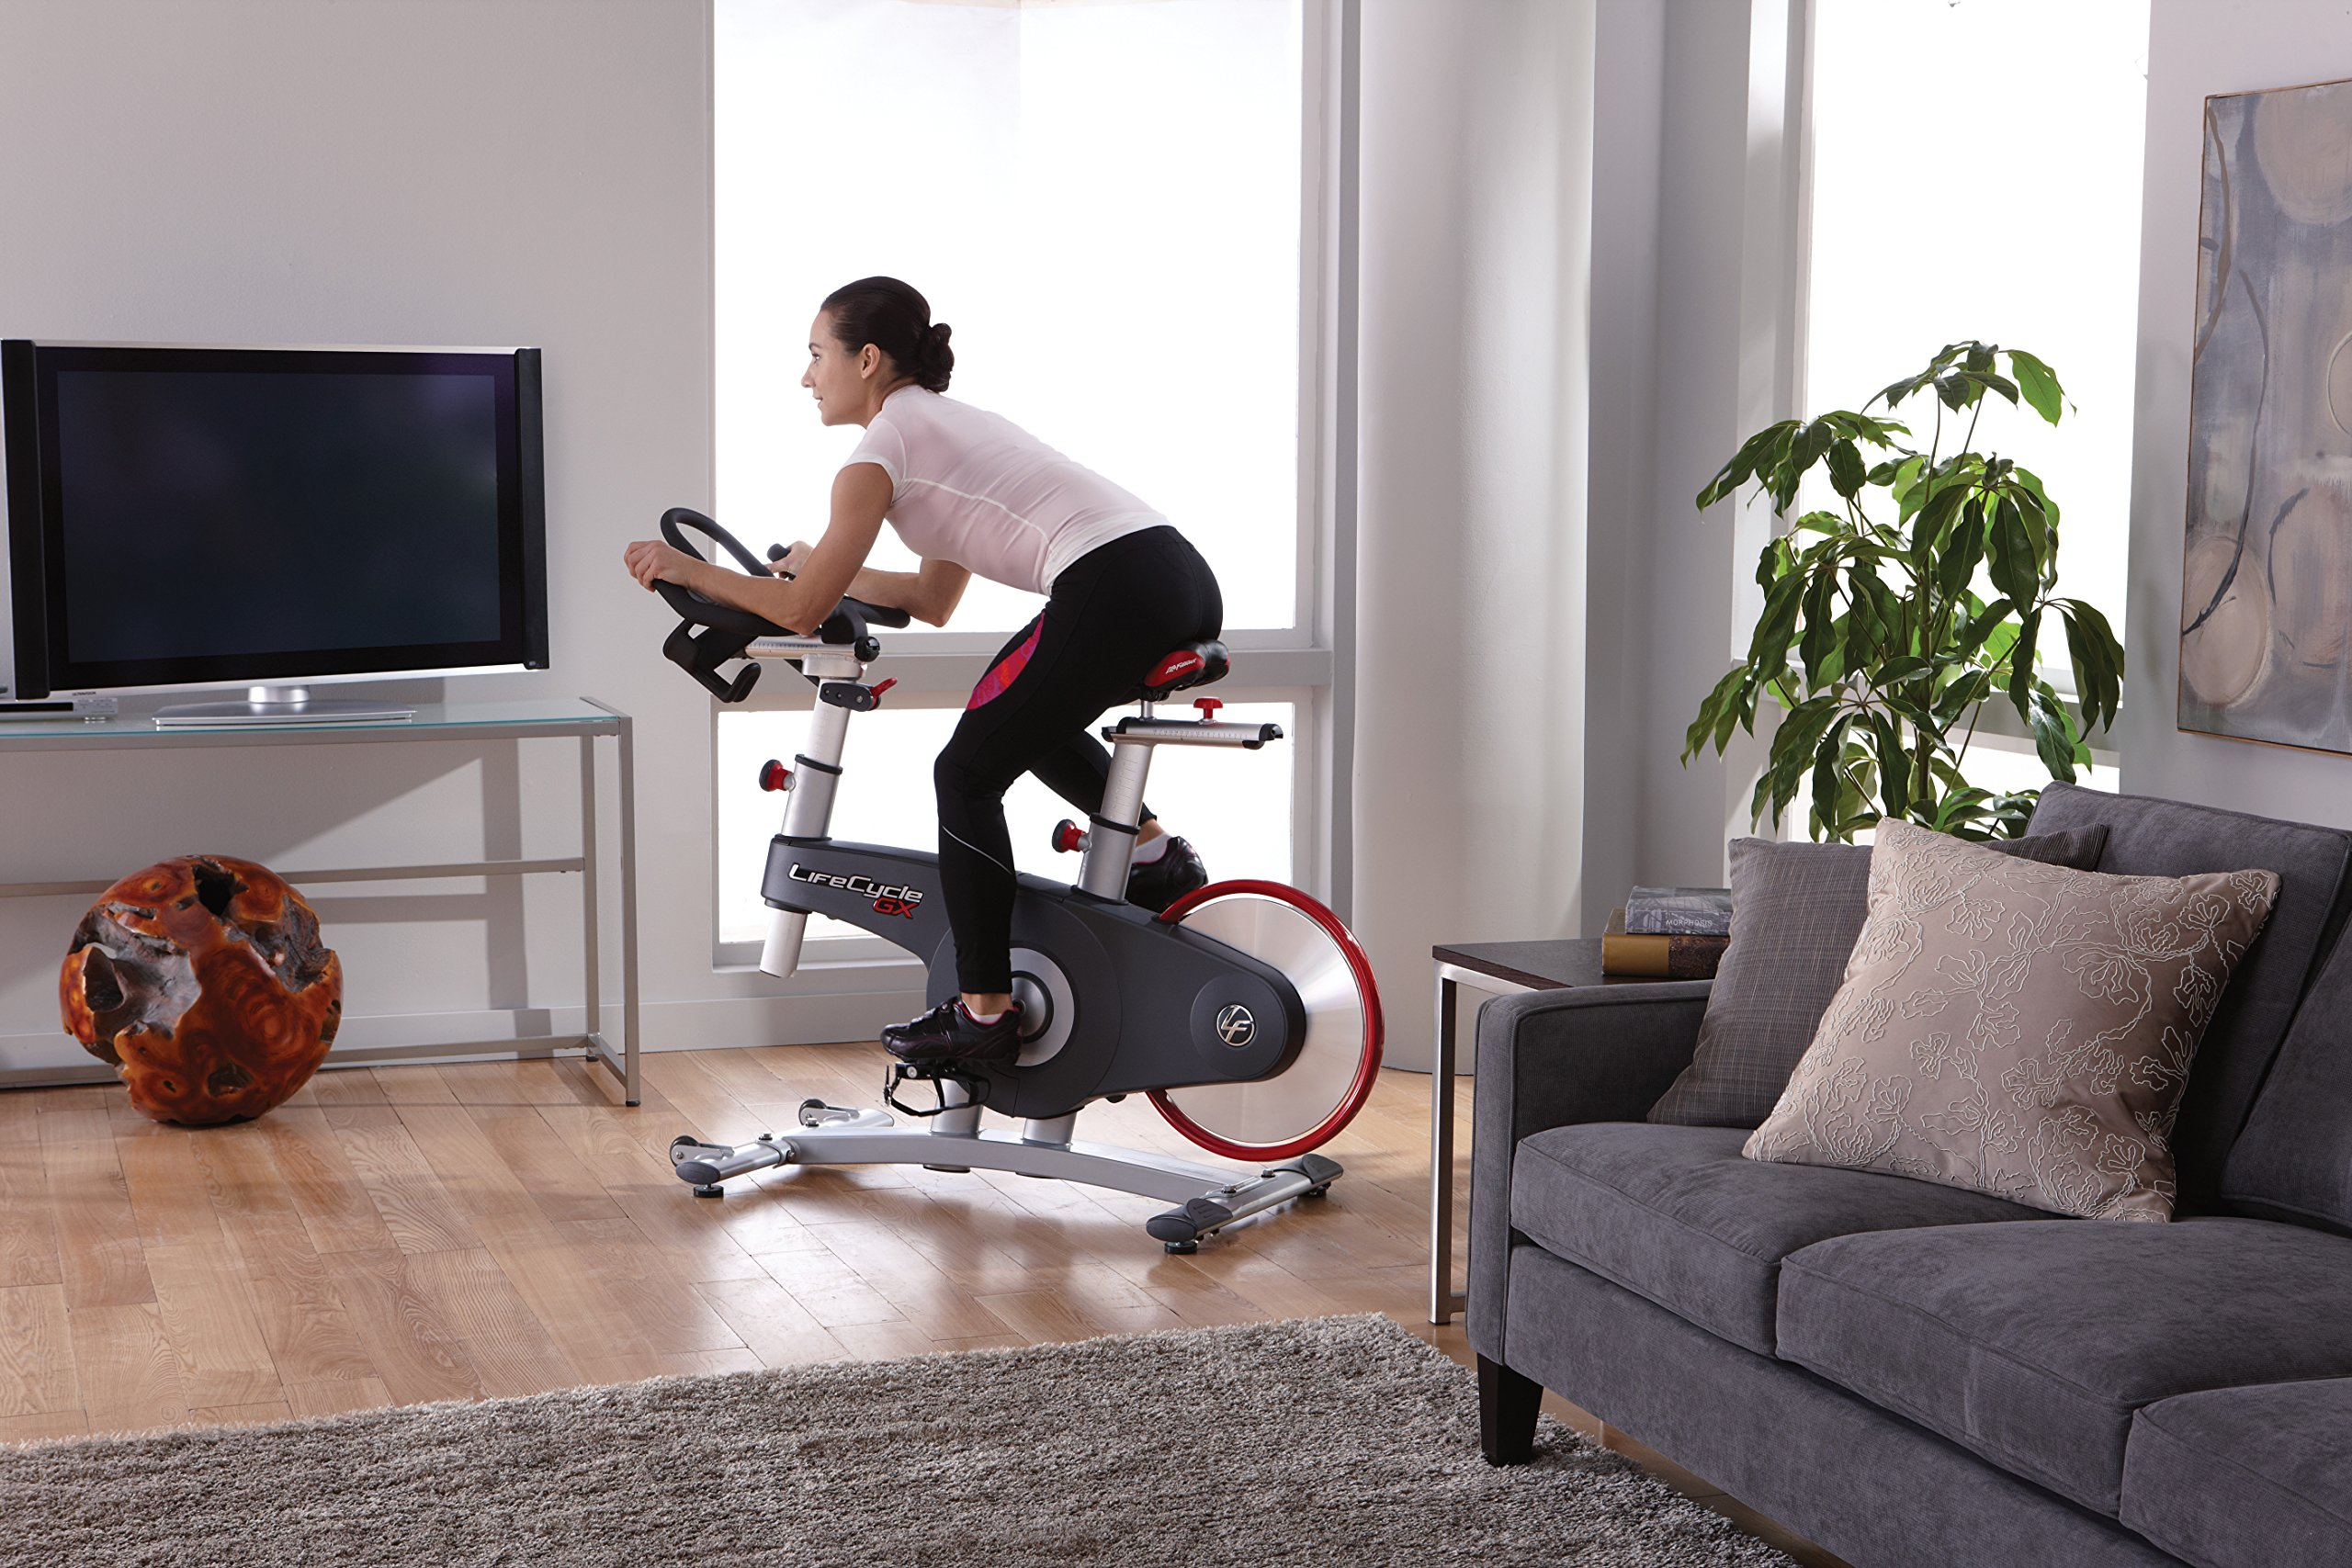 Life Fitness Lifecycle GX Group Exercise Bike with Console by Life Fitness (Image #4)